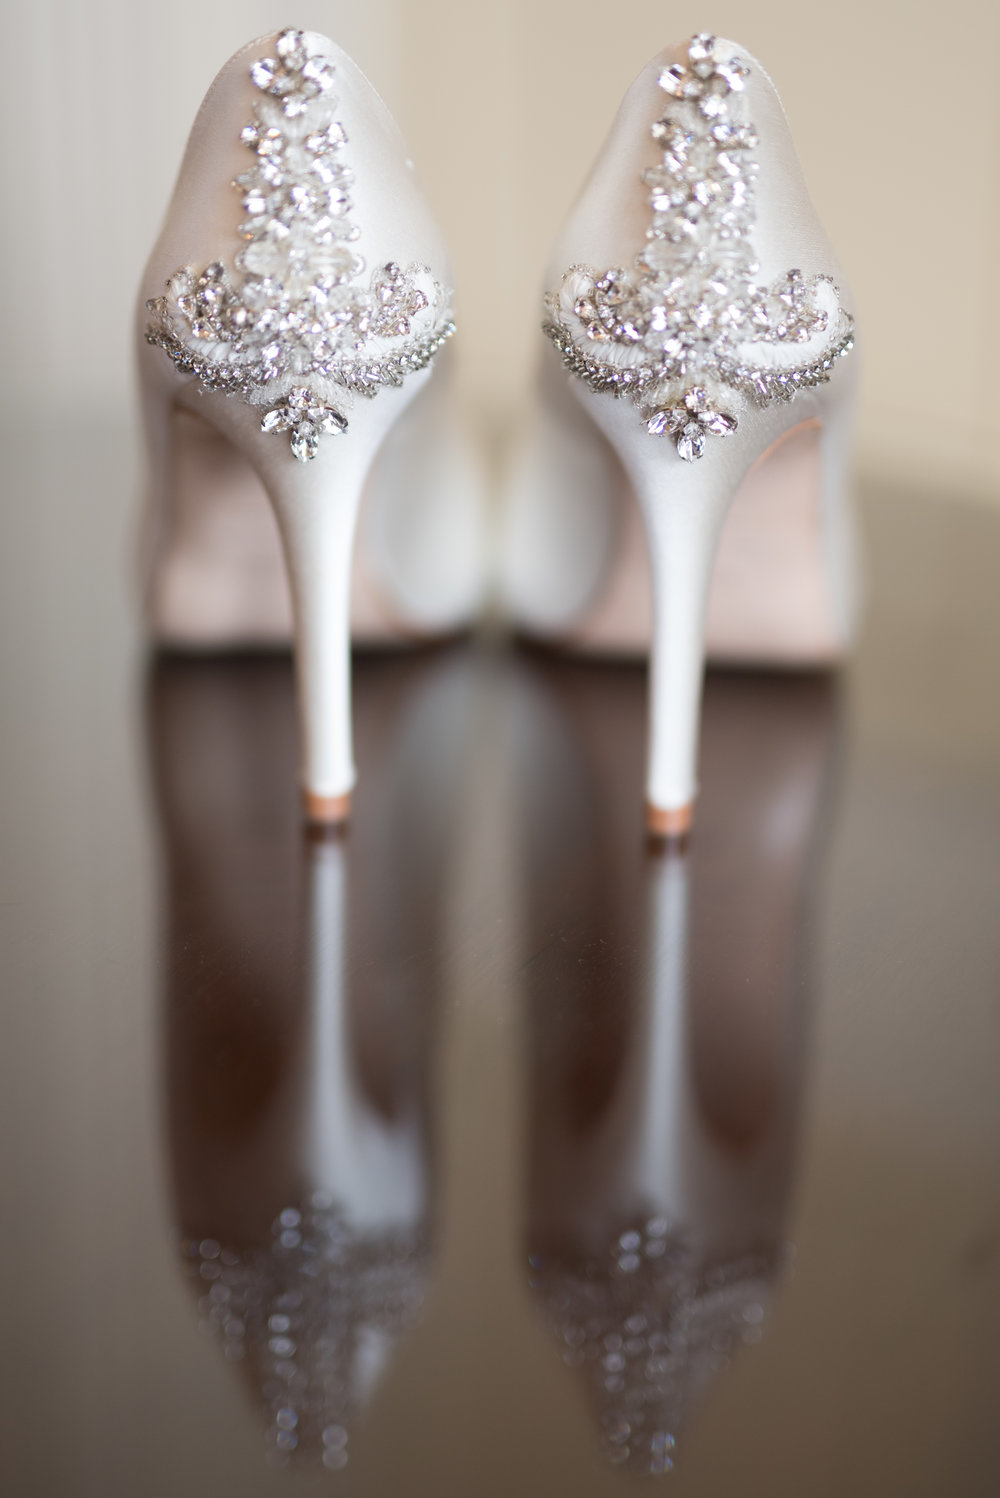 Designer wedding shoes, Buckinghamshire wedding photographer